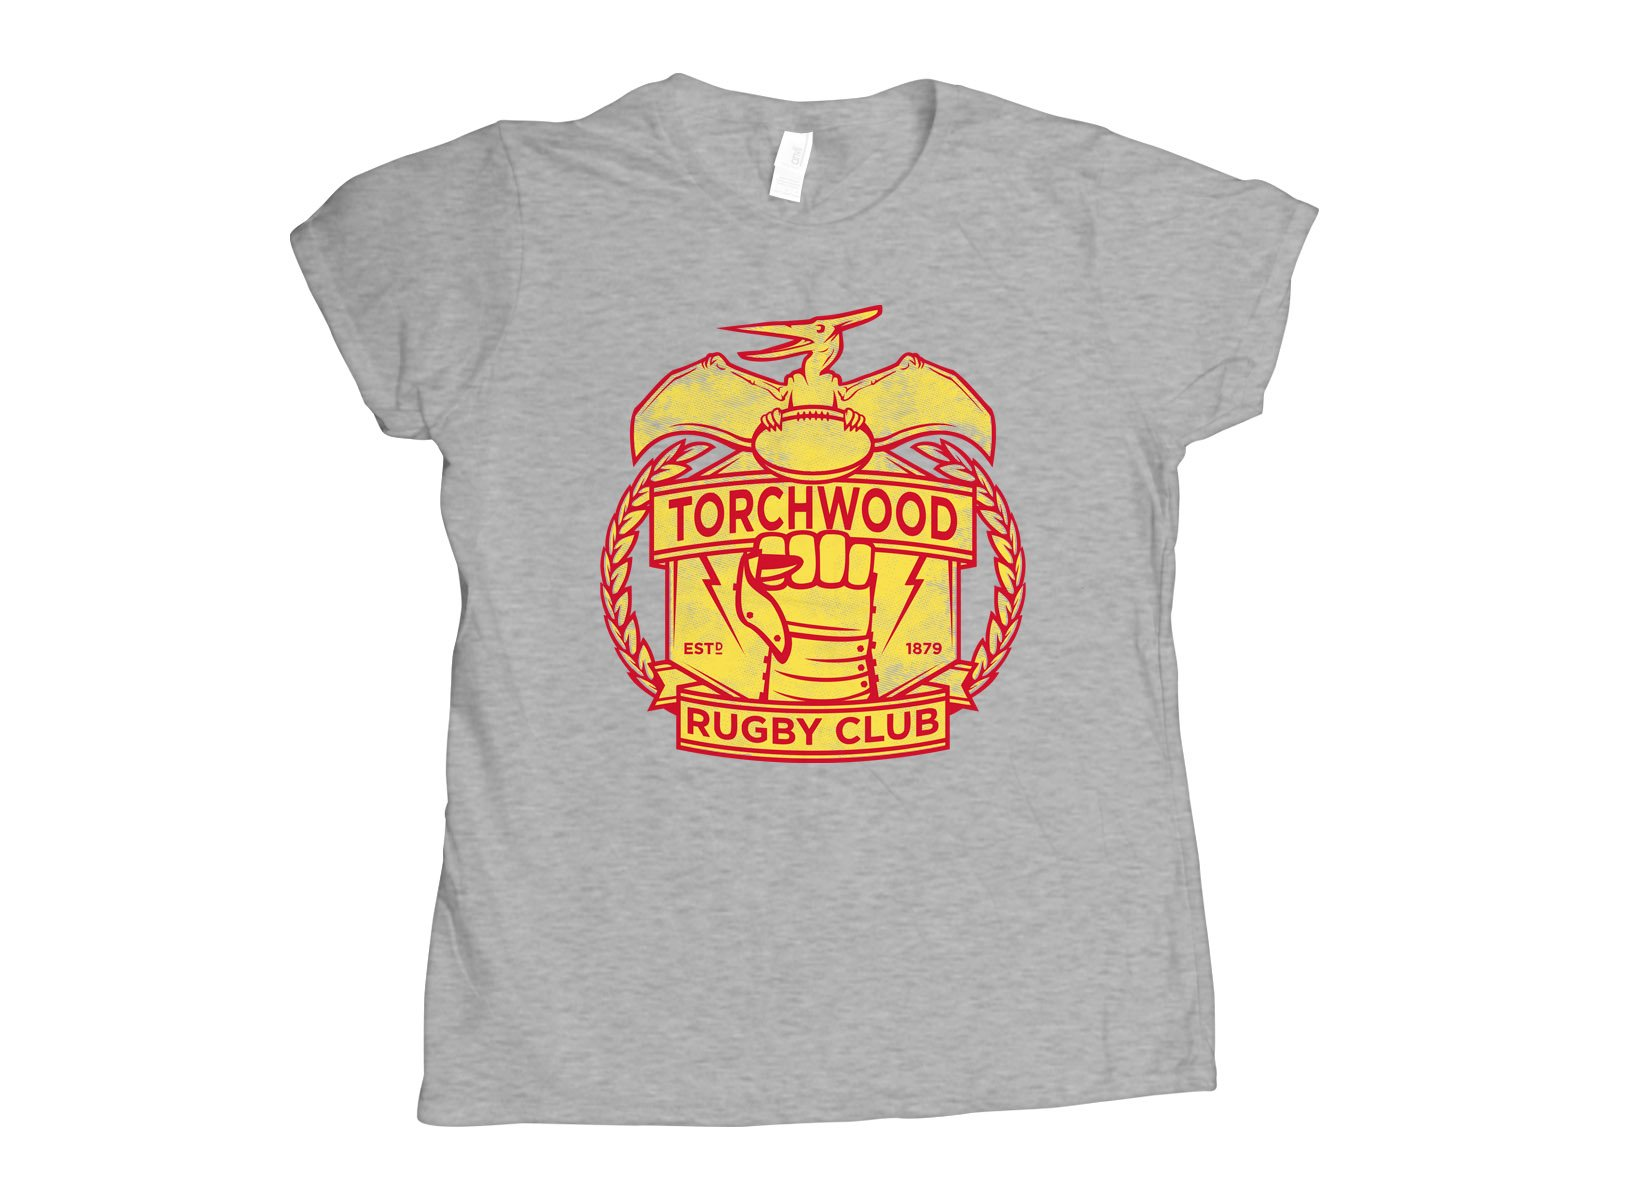 Torchwood Rugby Club on Womens T-Shirt